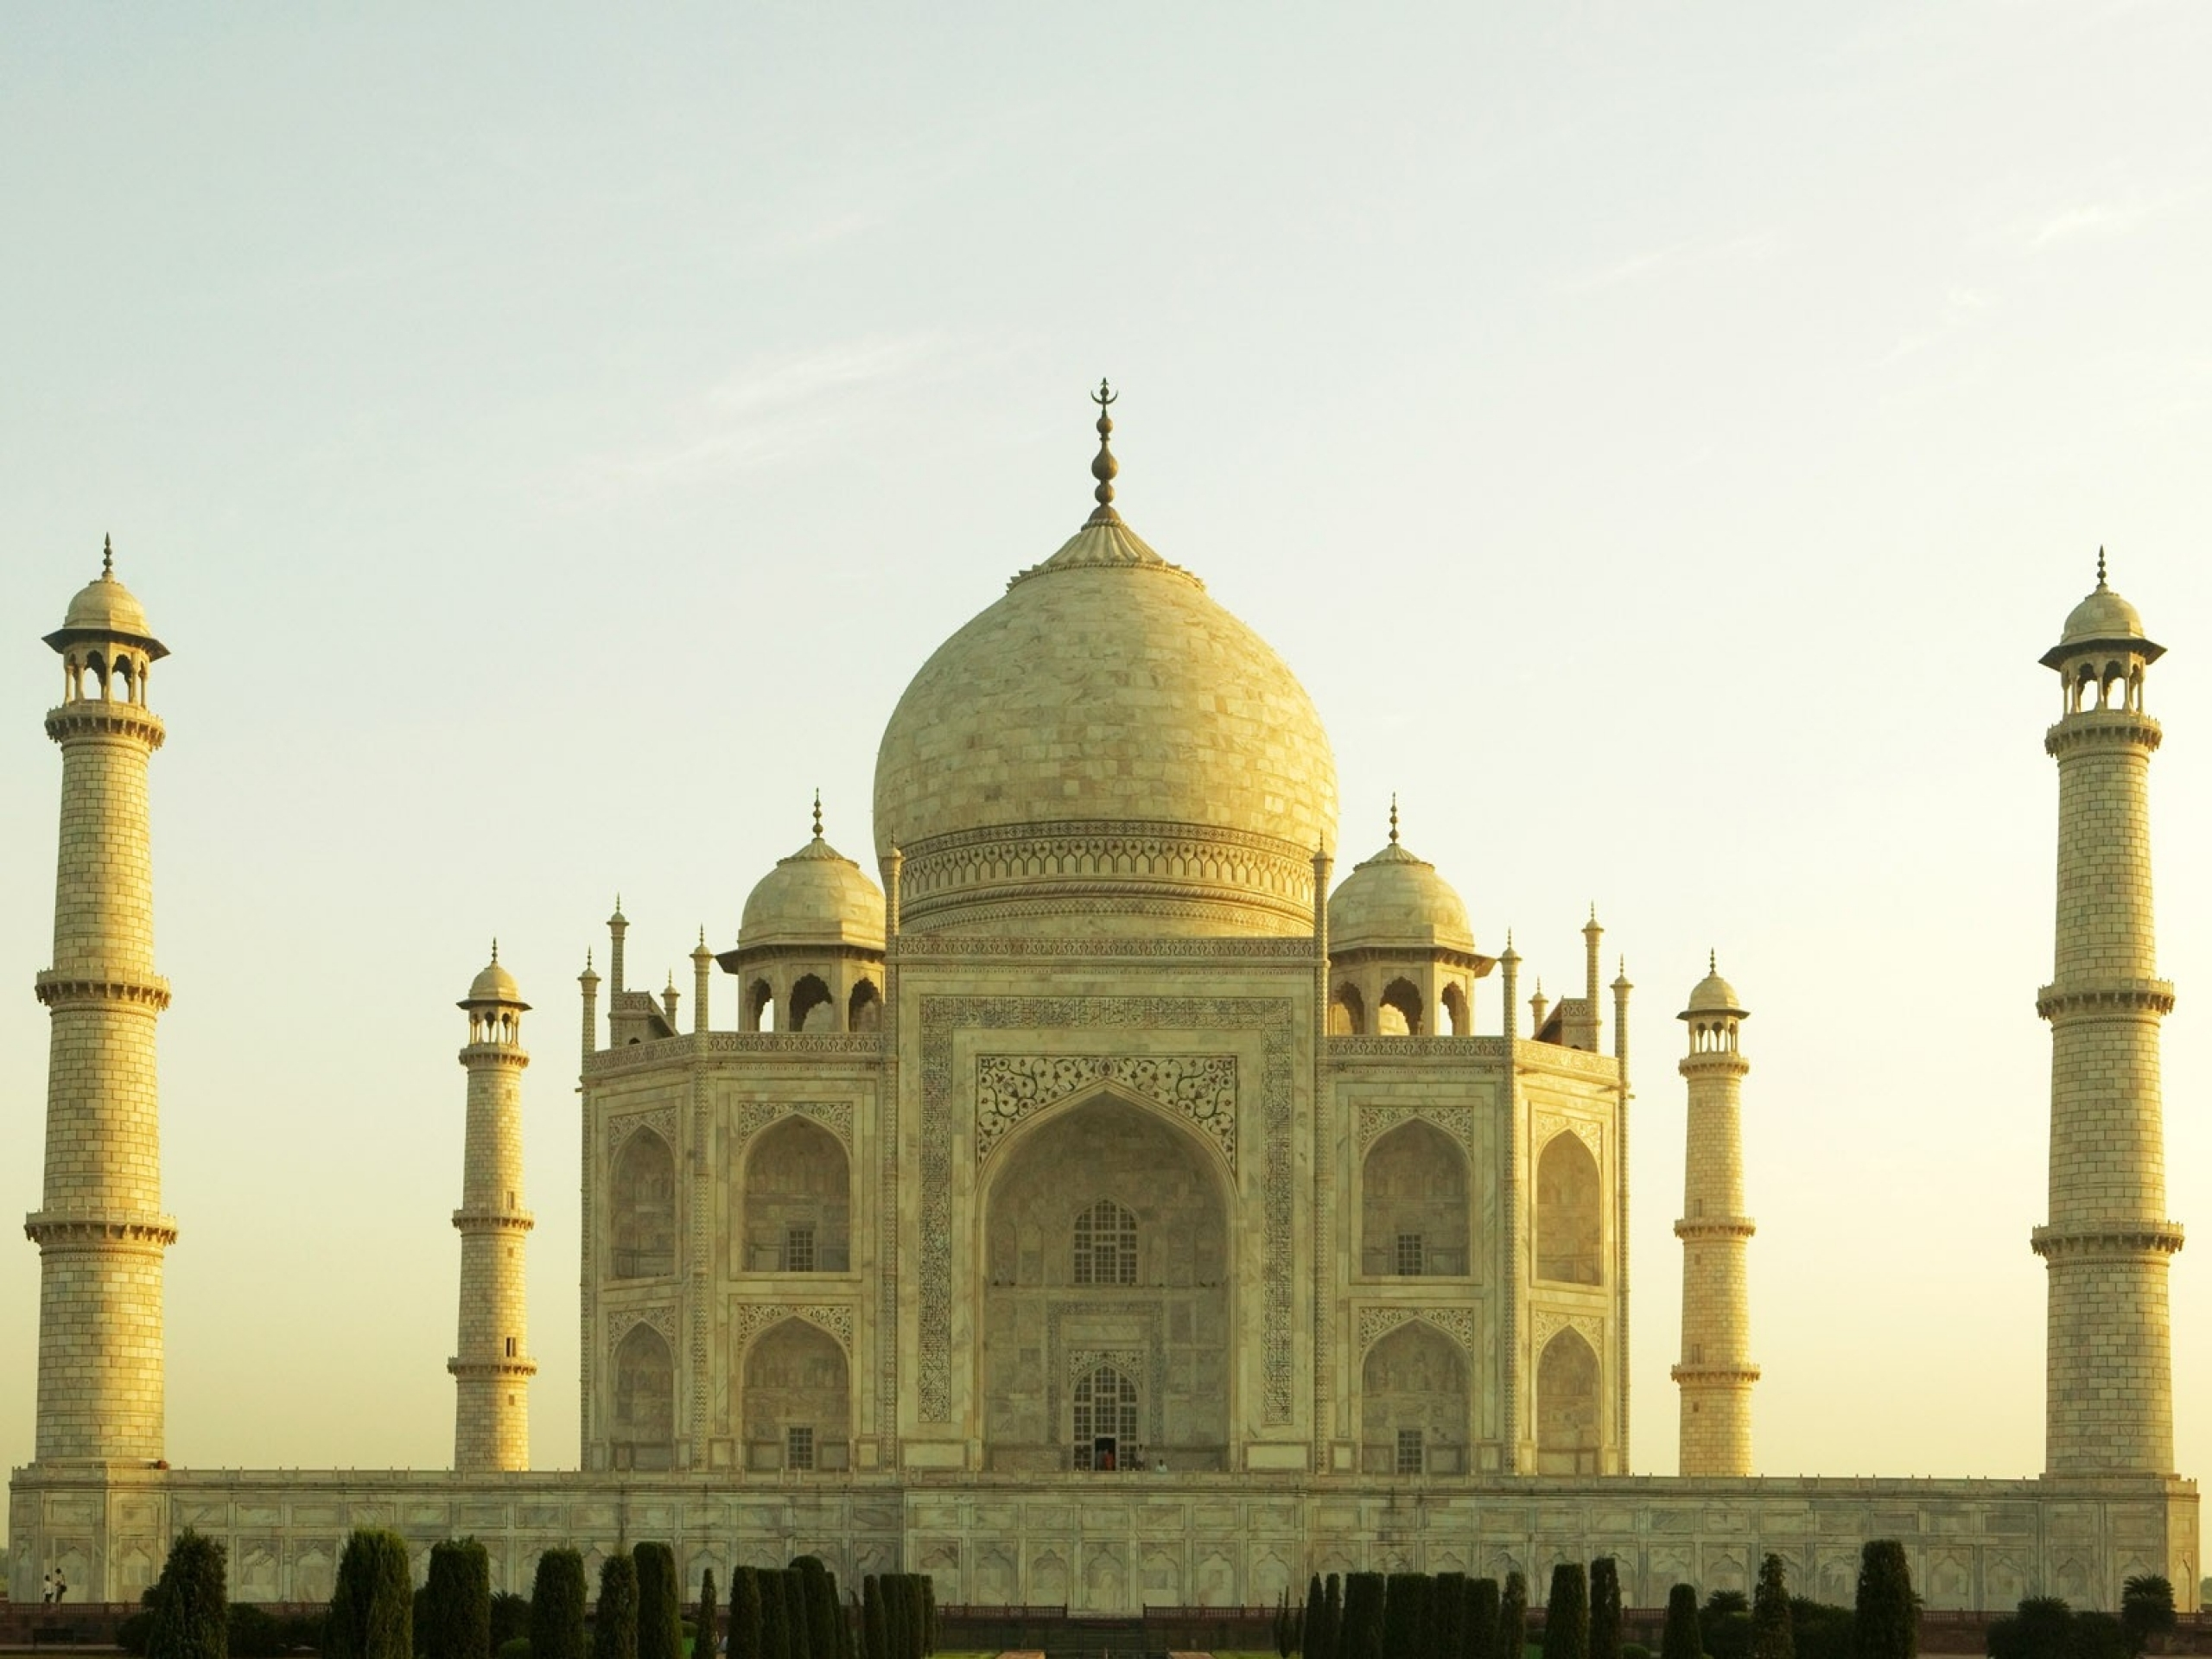 Hd wallpaper taj mahal - Hd Wallpaper Background Id 374260 2560x1920 Man Made Taj Mahal